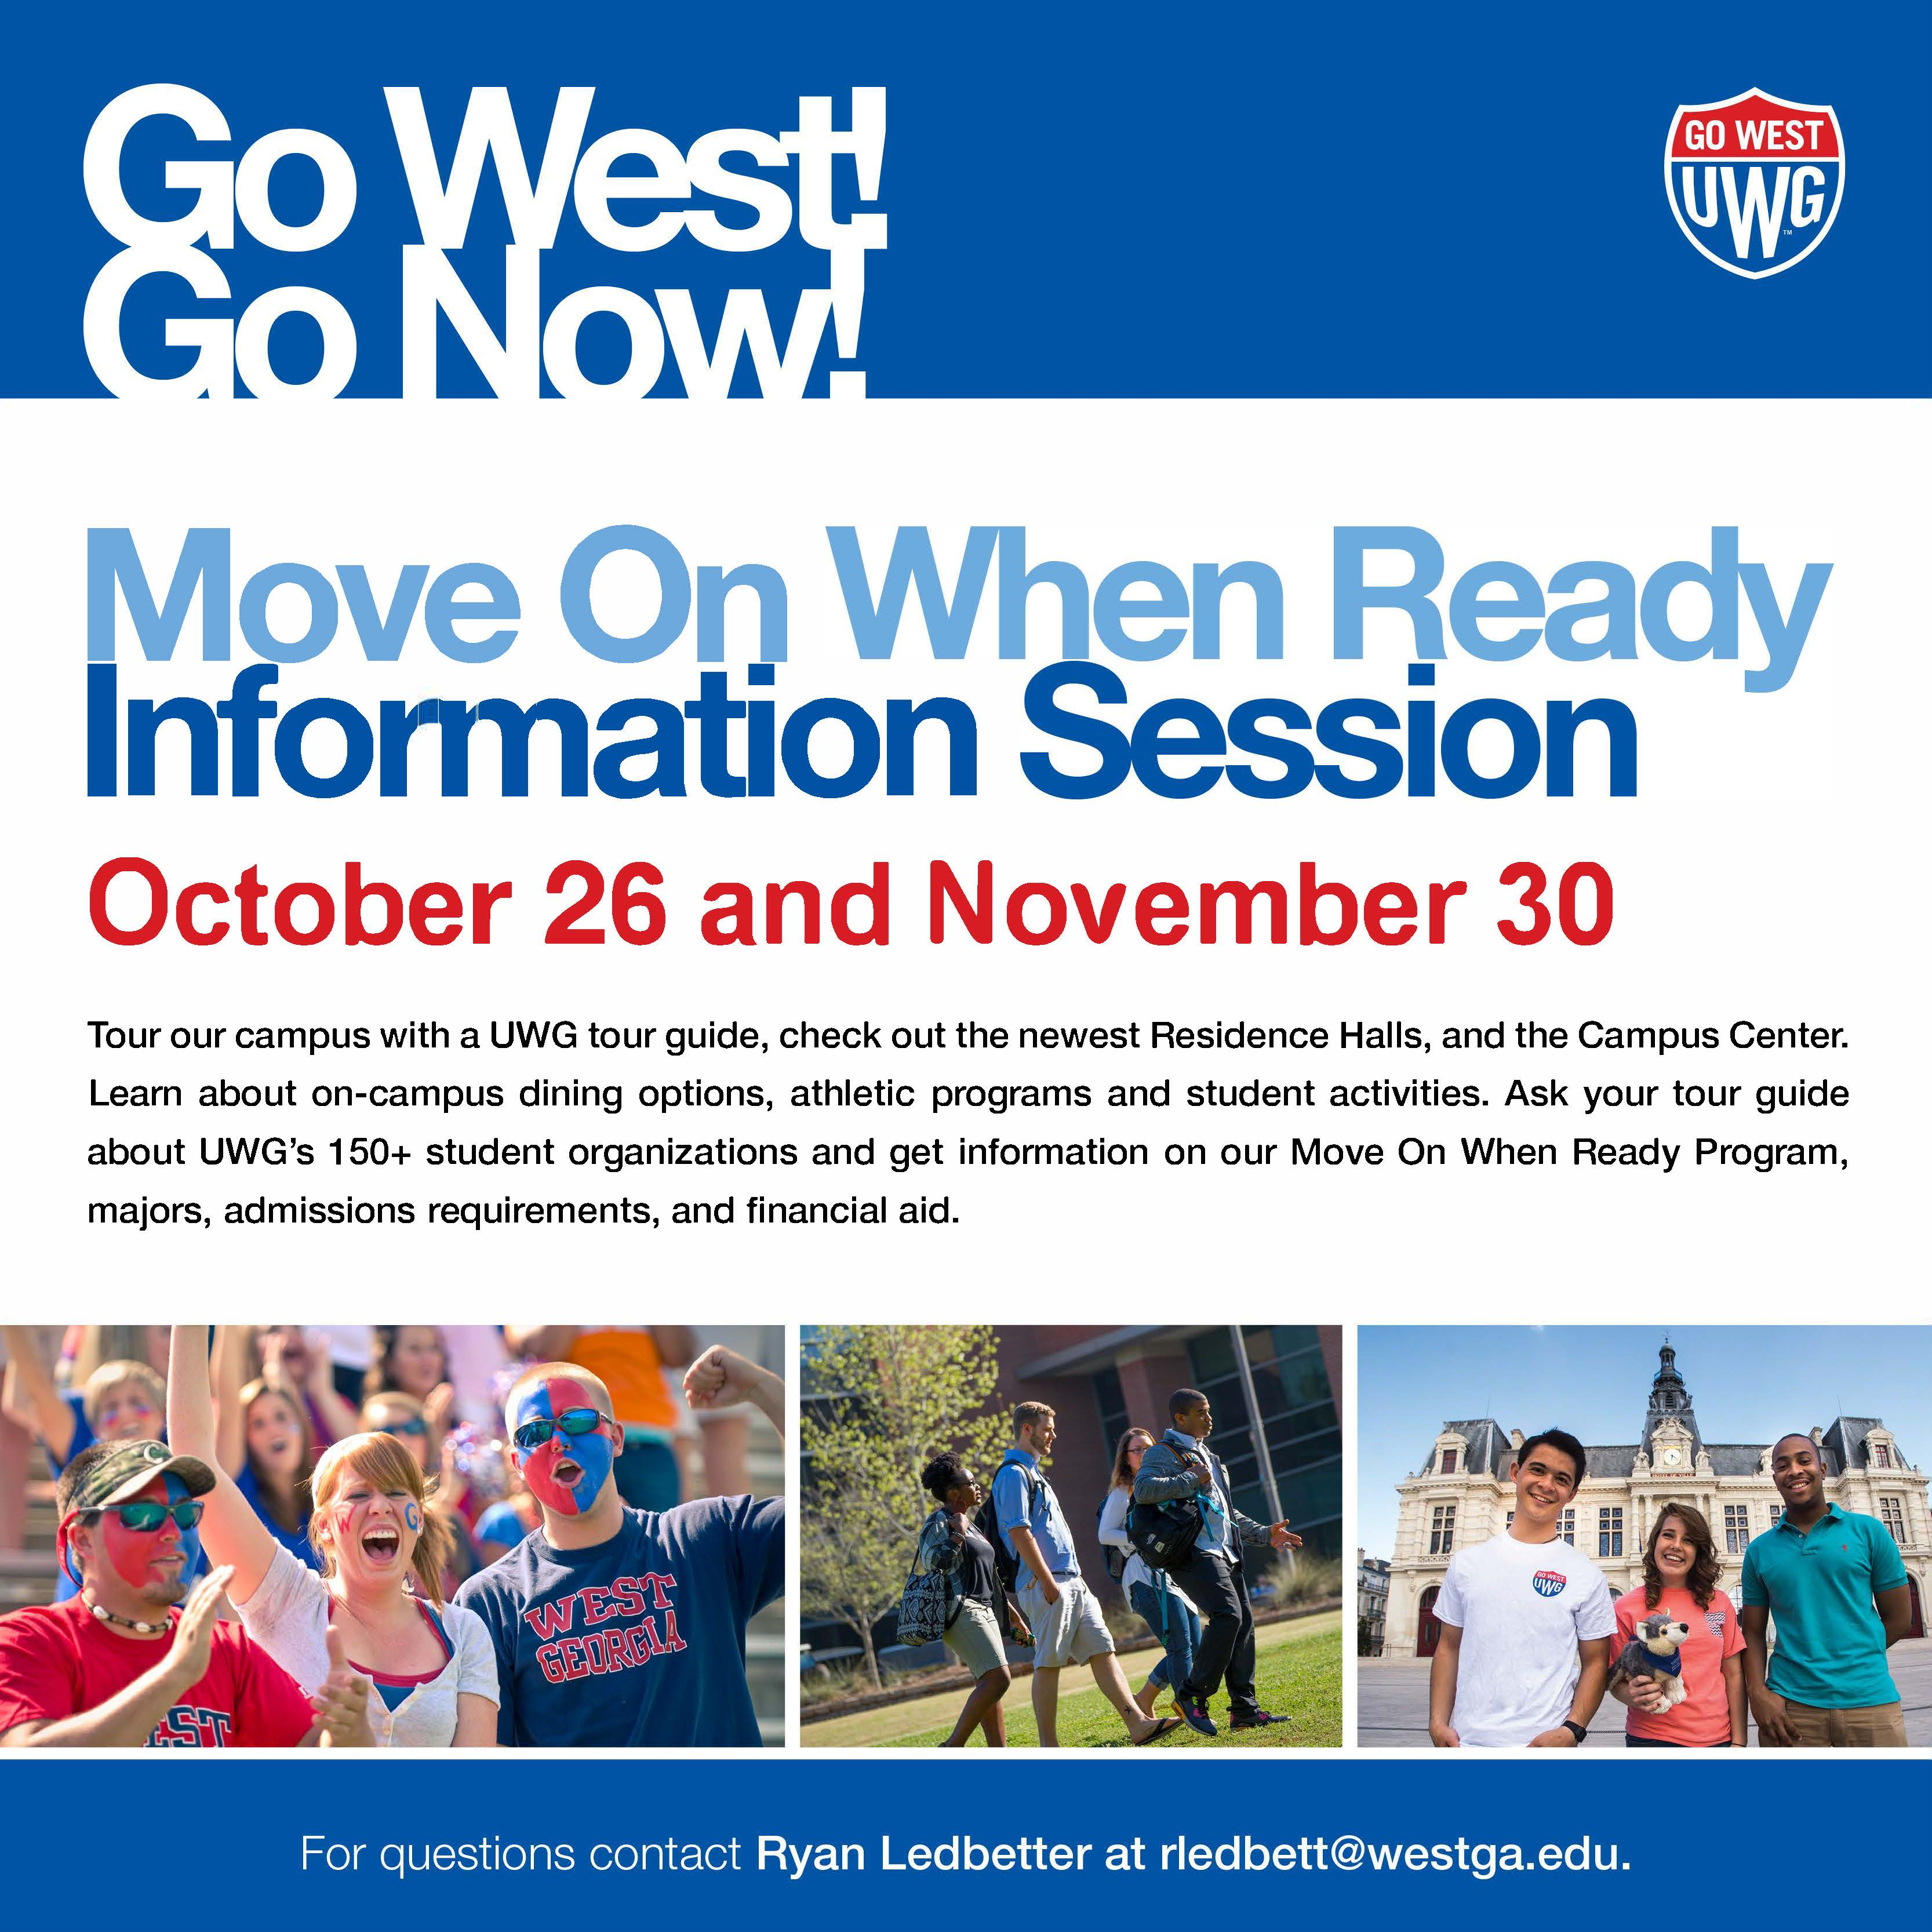 MOWR Information Session